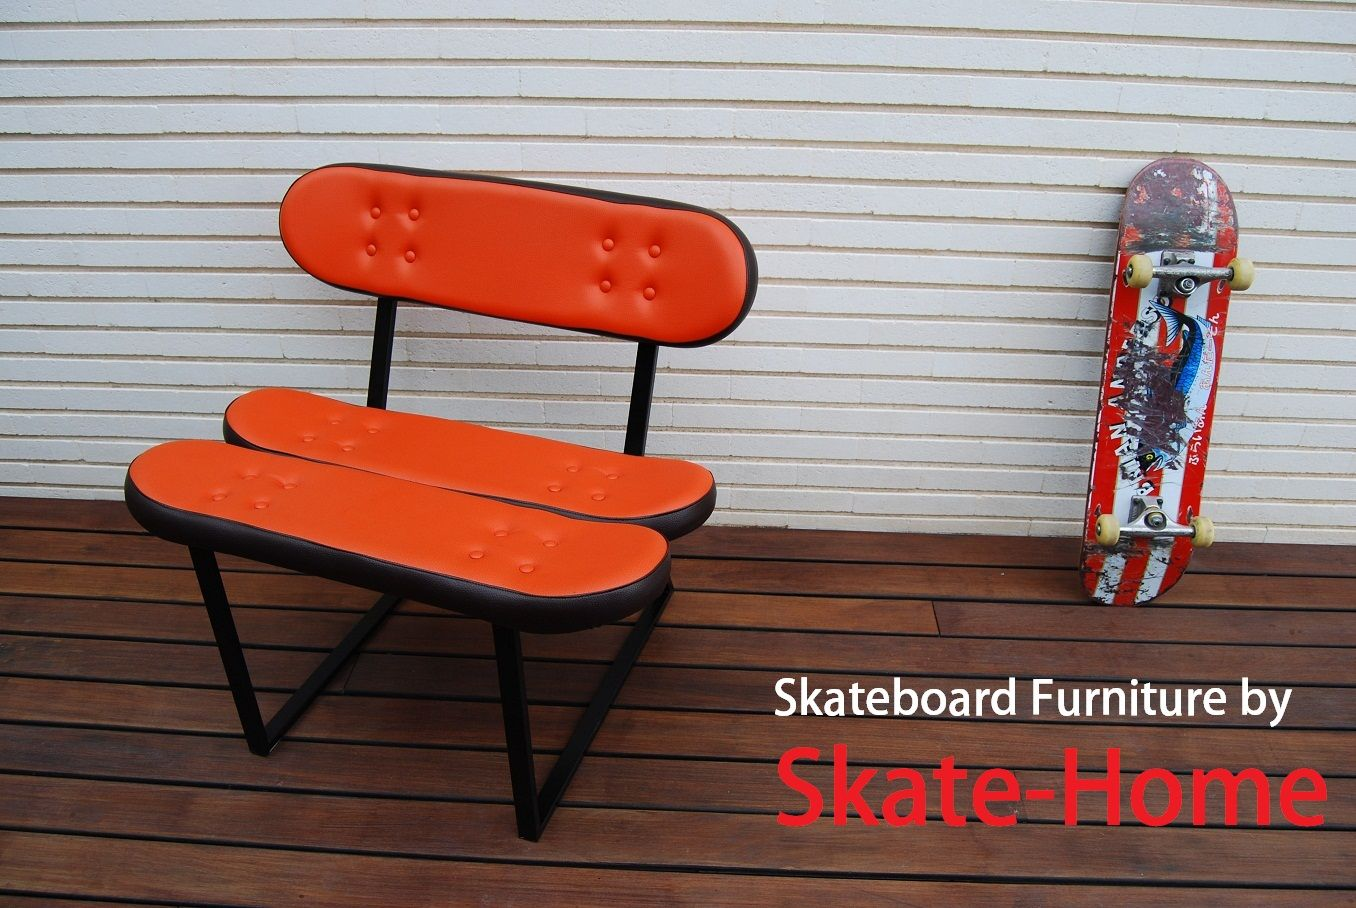 Skateboard Furniture by Skate-Home. www.skate-home.com ...